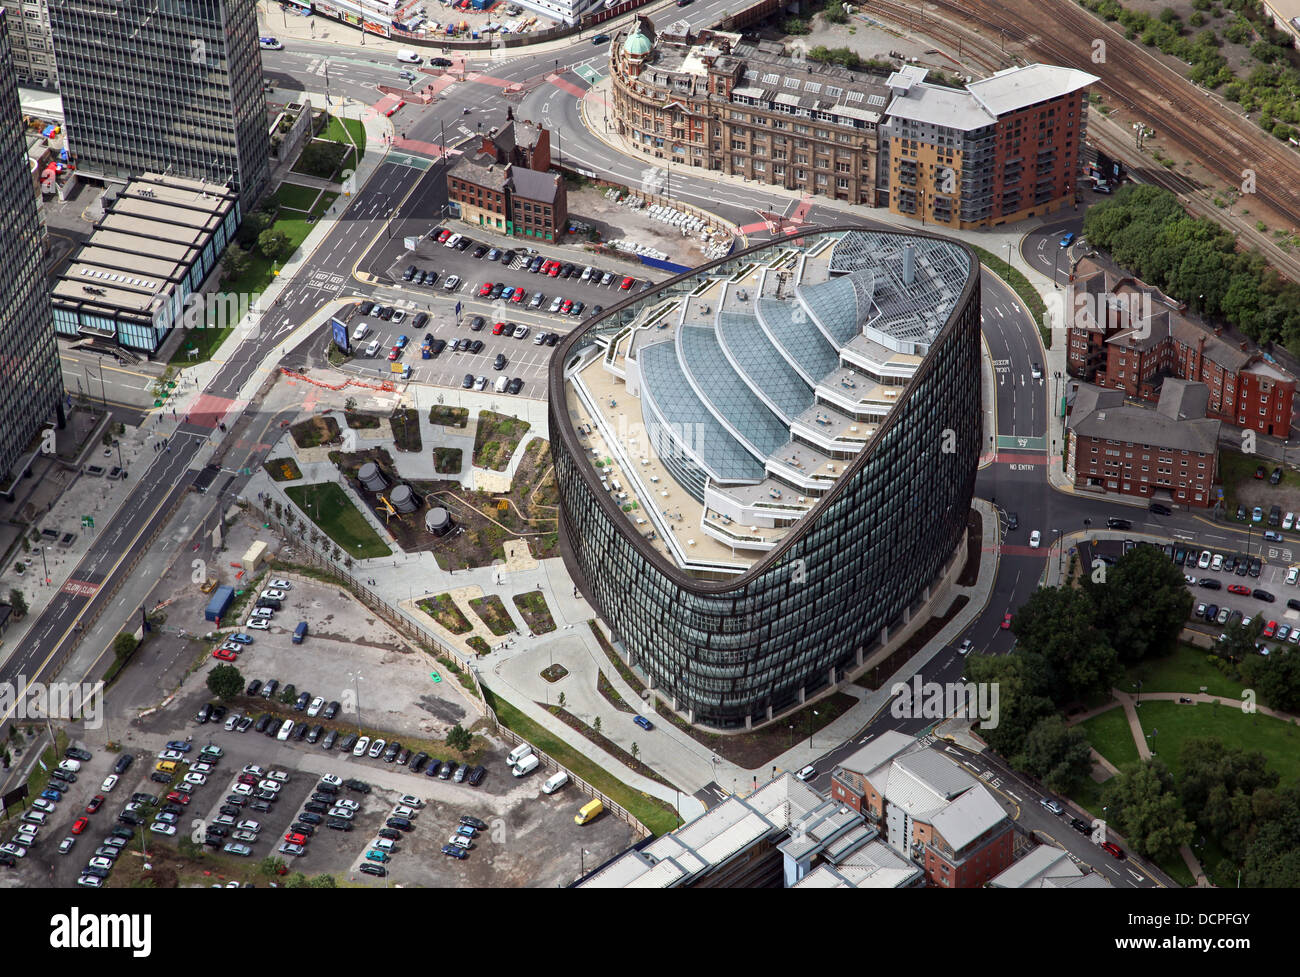 aerial view of One Angel Square in Manchester city centre, home of CoOperative Group, Co-op HQ - Stock Image